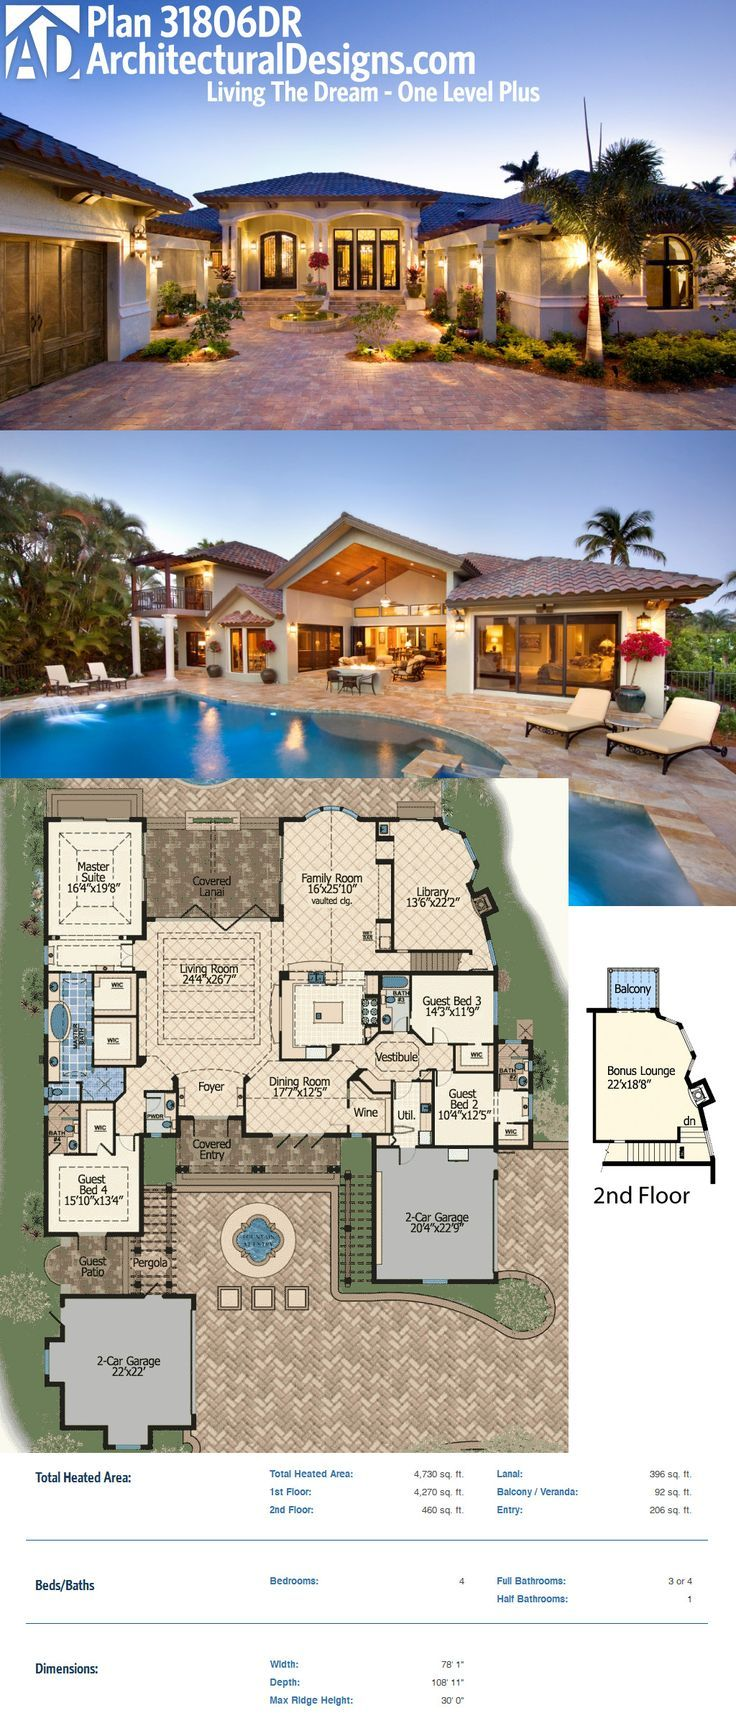 Architectural designs house plan 31806dn one level living